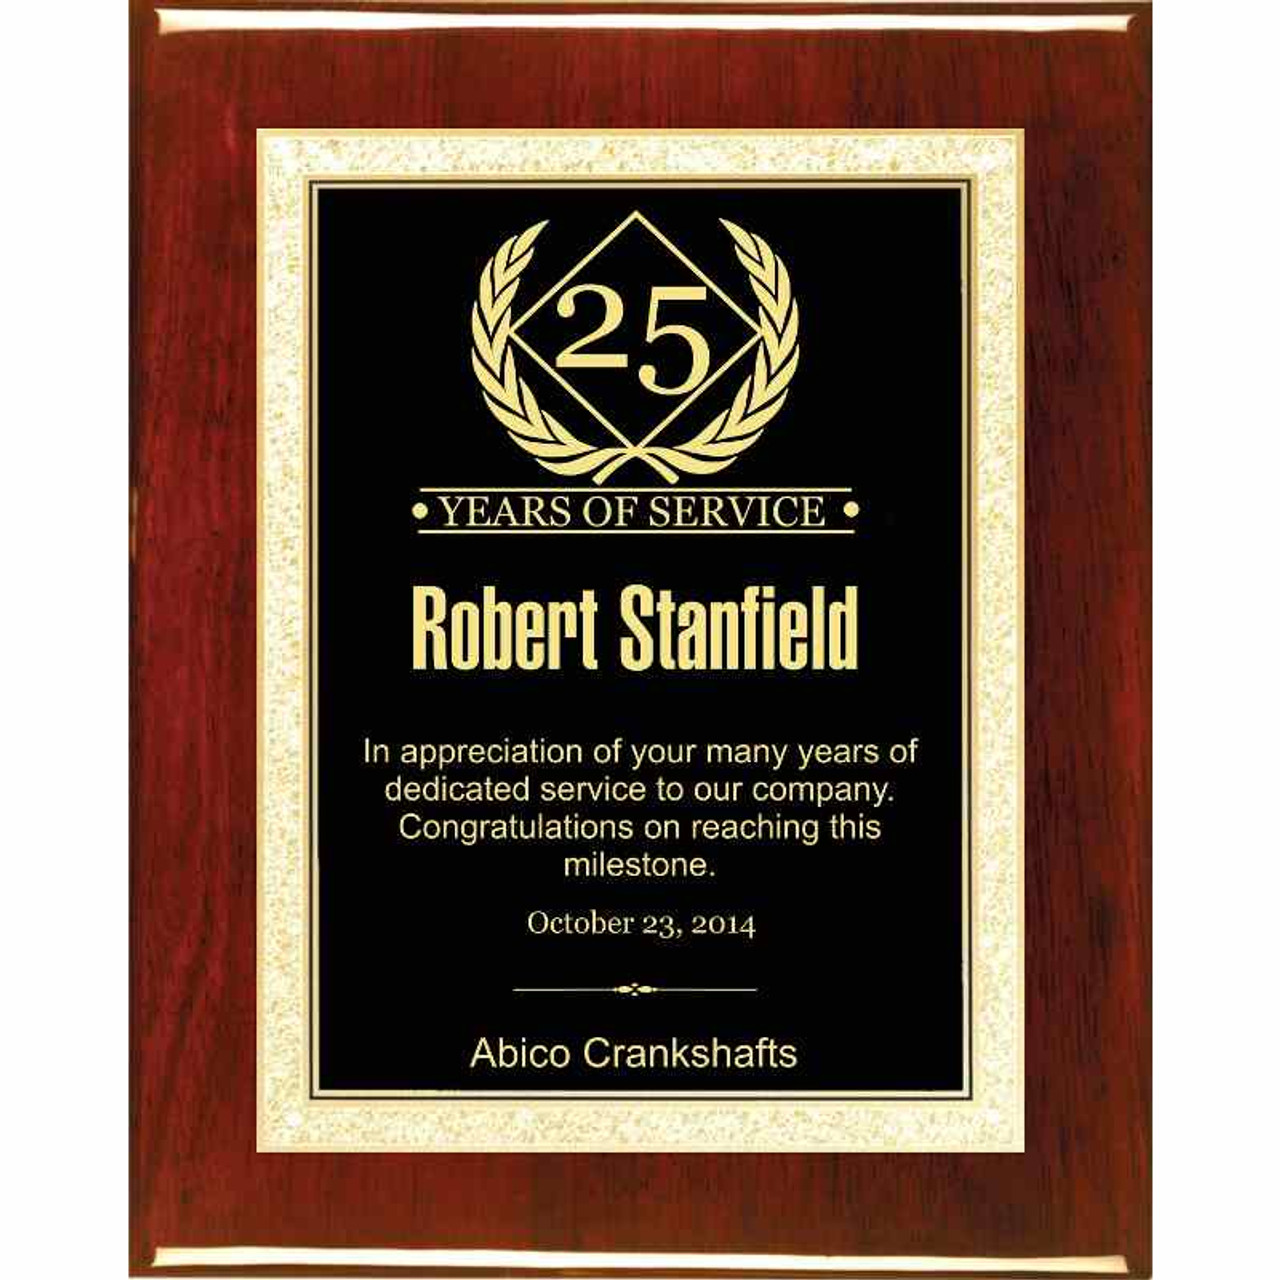 Years of Service Plaque